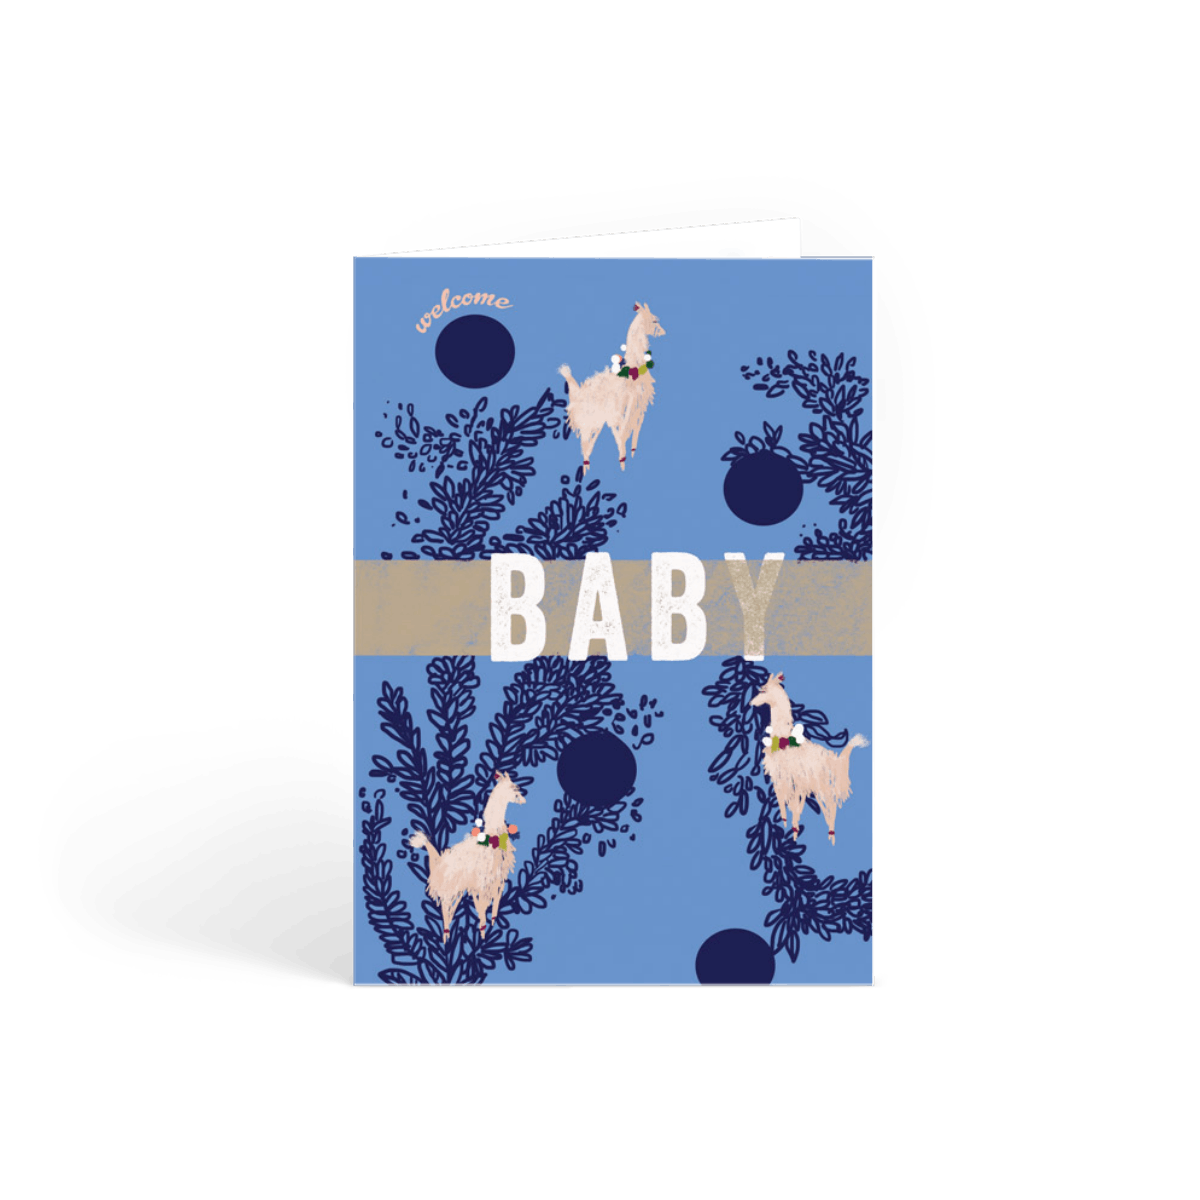 Https%3a%2f%2fwww.papier.com%2fproduct image%2f29165%2f2%2fllama welcome baby 7324 front 1507746163.png?ixlib=rb 1.1